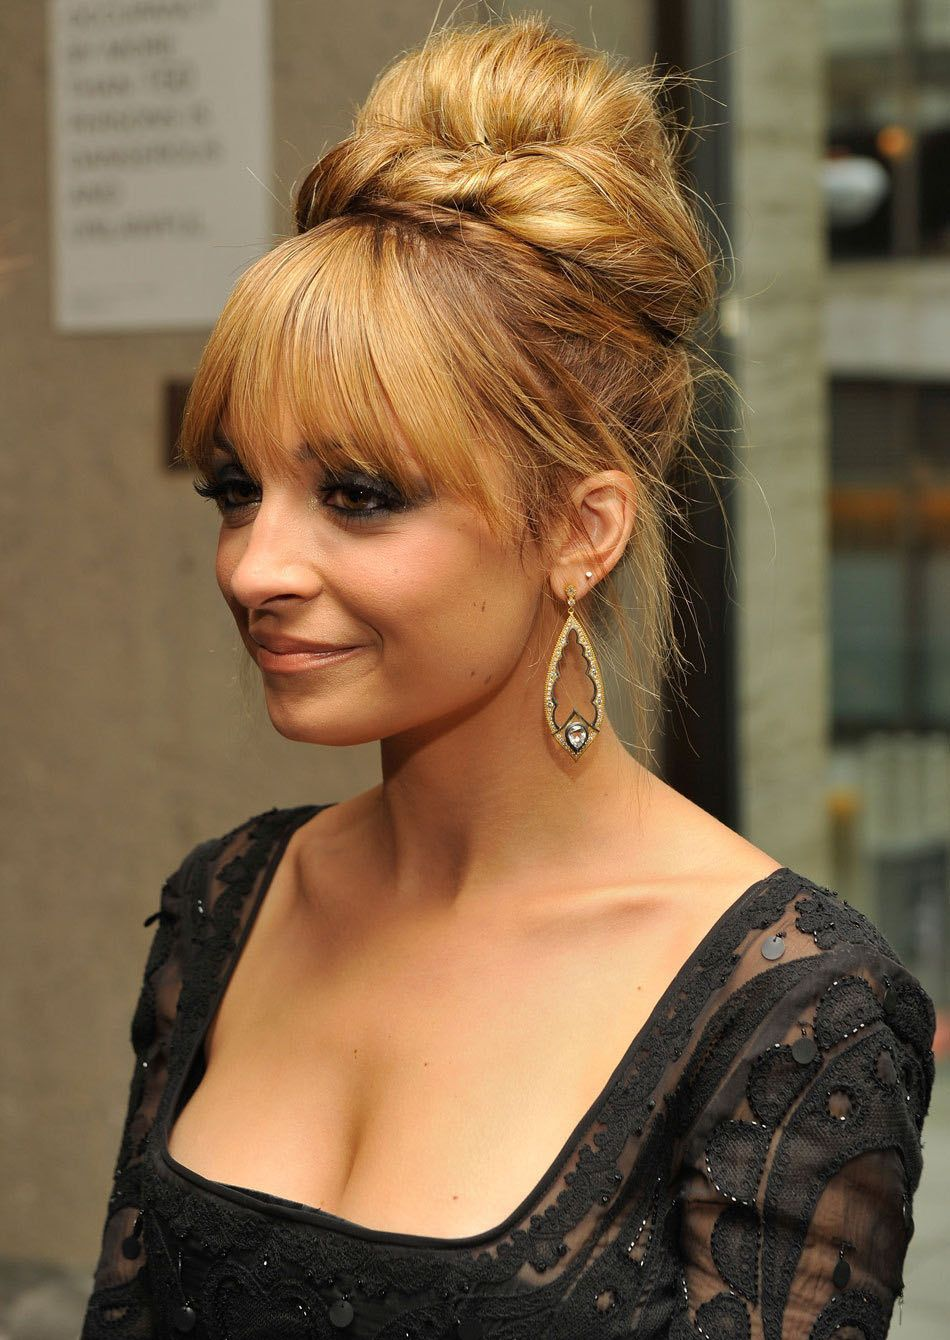 Nicole Richie long #hair updo with a fringe Love it